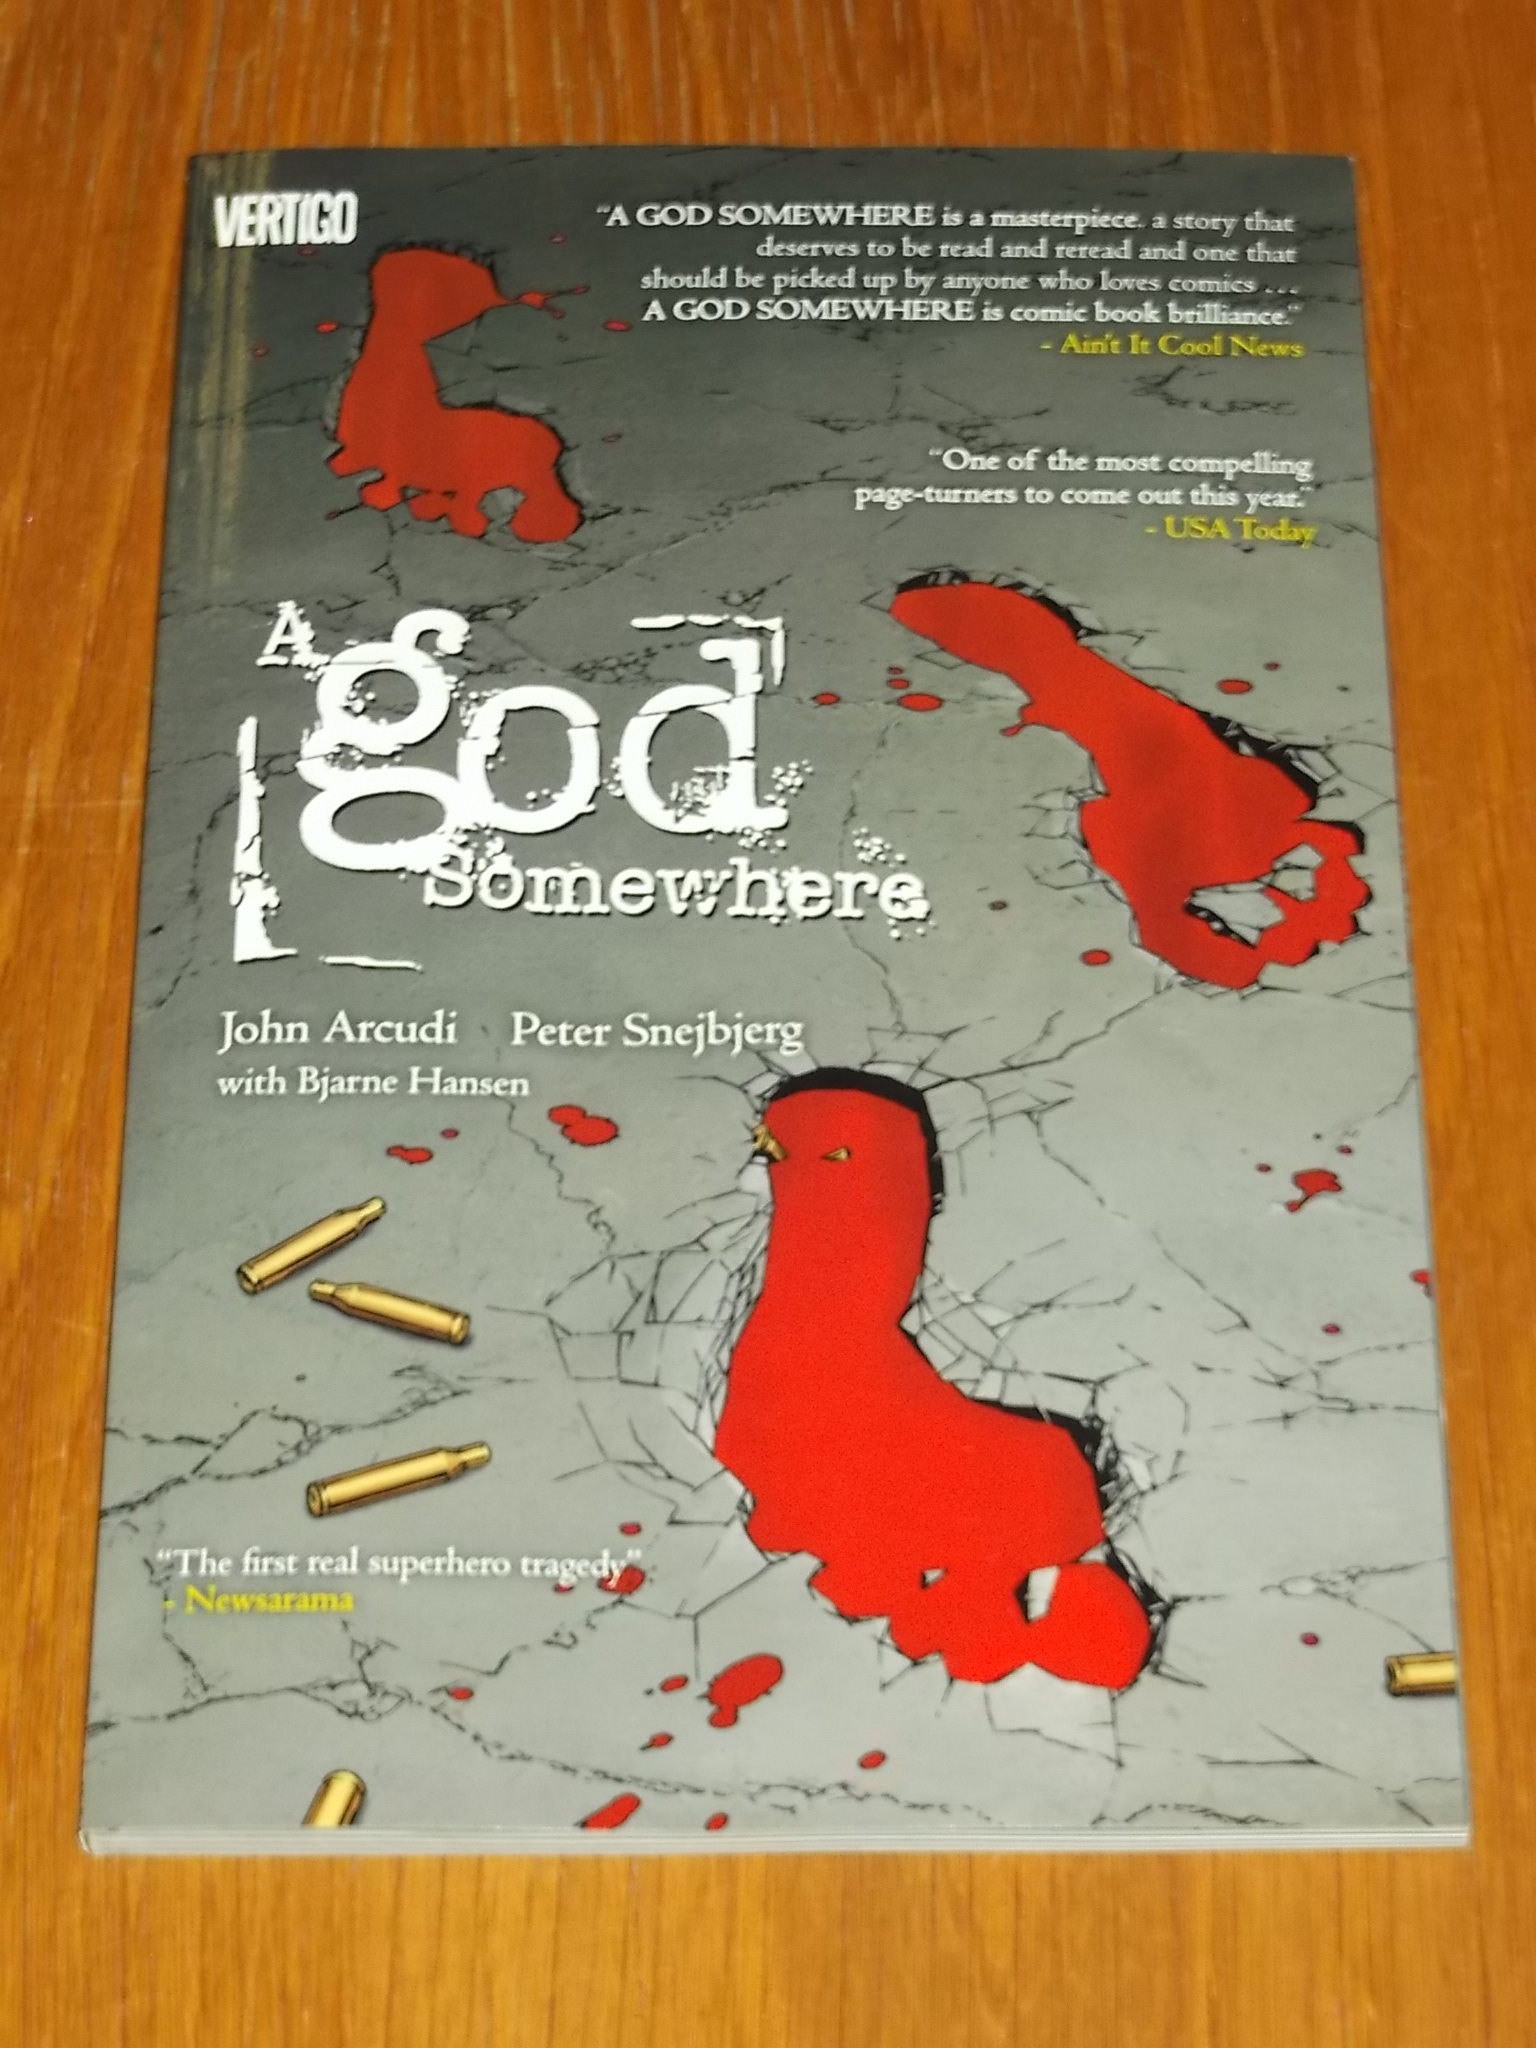 A GOD SOMEWHERE JOHN ARCUDI PETER SNEJBJERG BJARNE HANSEN VERTIGO< 9781401232467